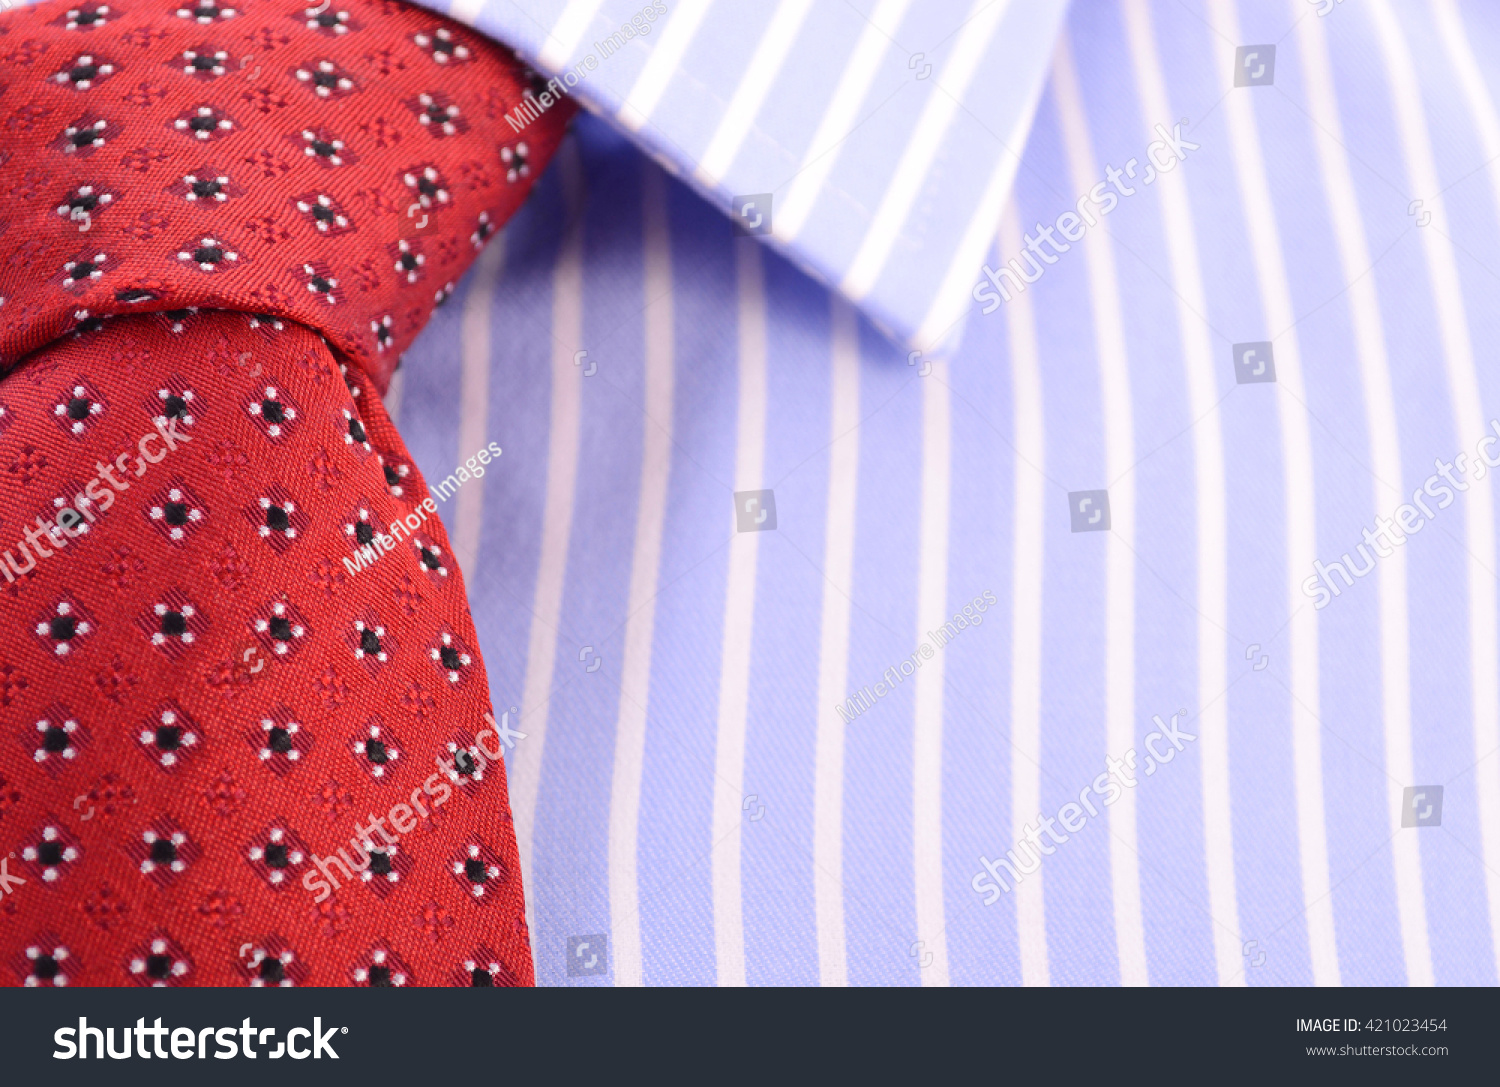 Fathers Day Concept Closeup Red Mens Stock Photo 421023454 ...